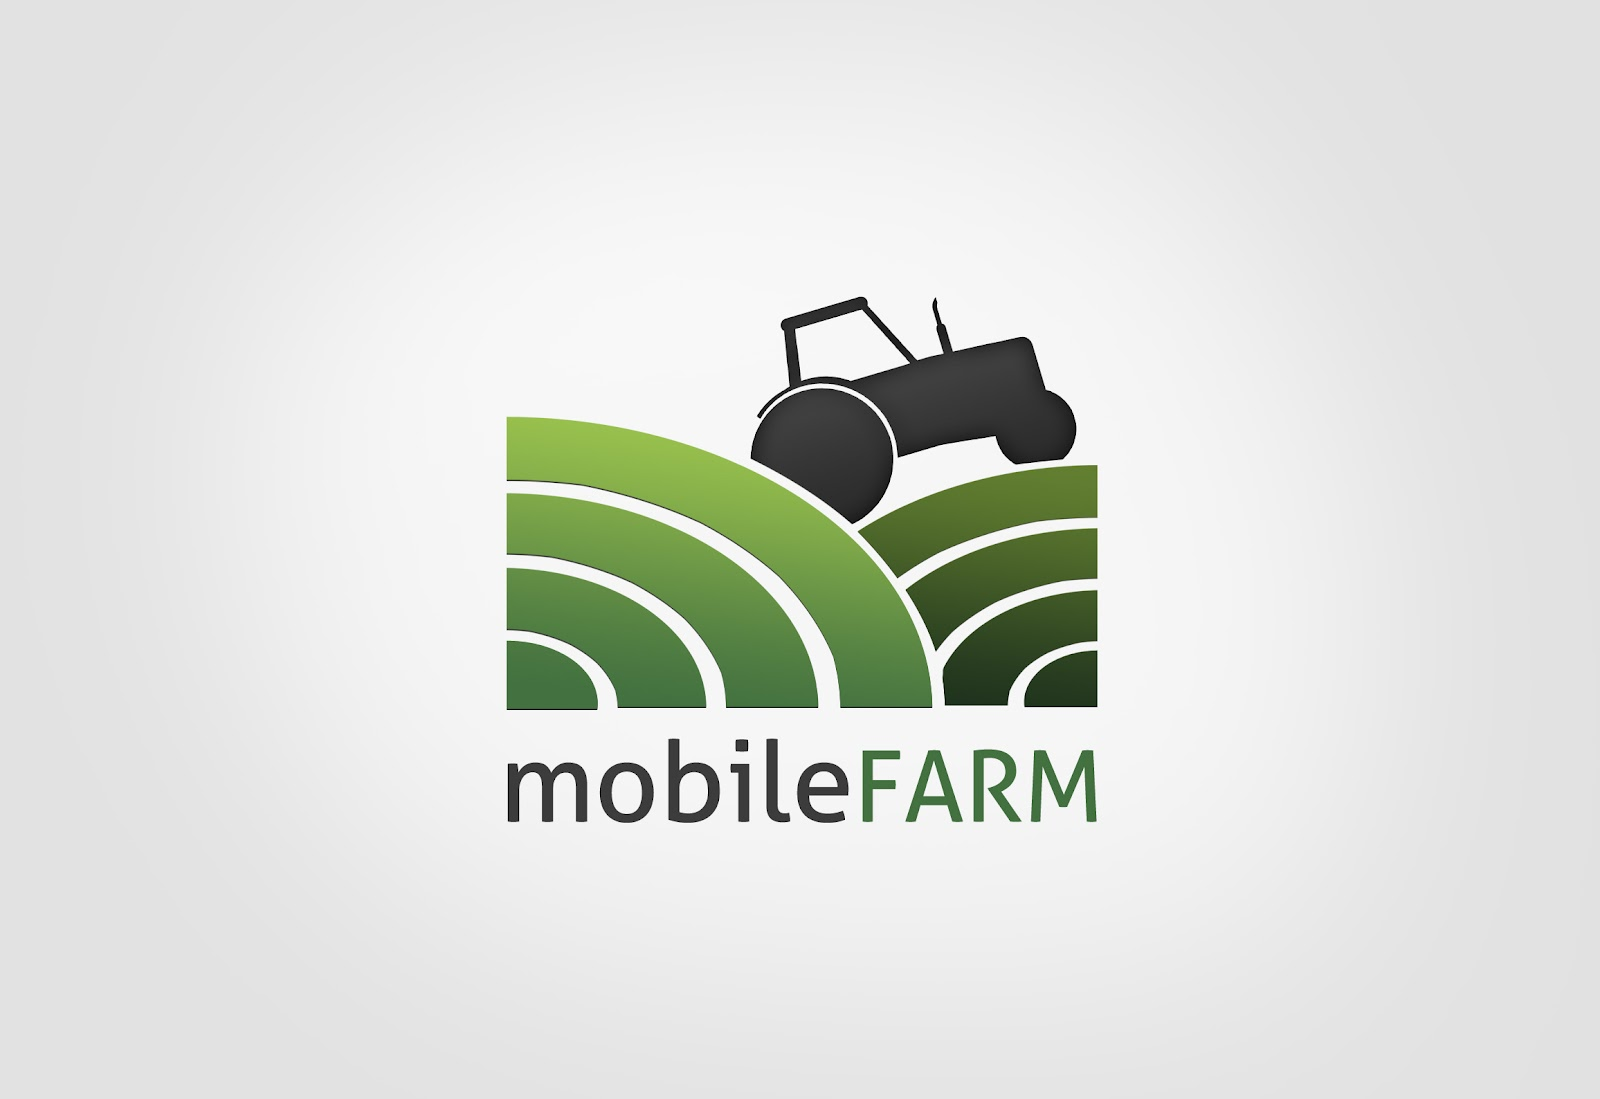 New app developed for the farming sector